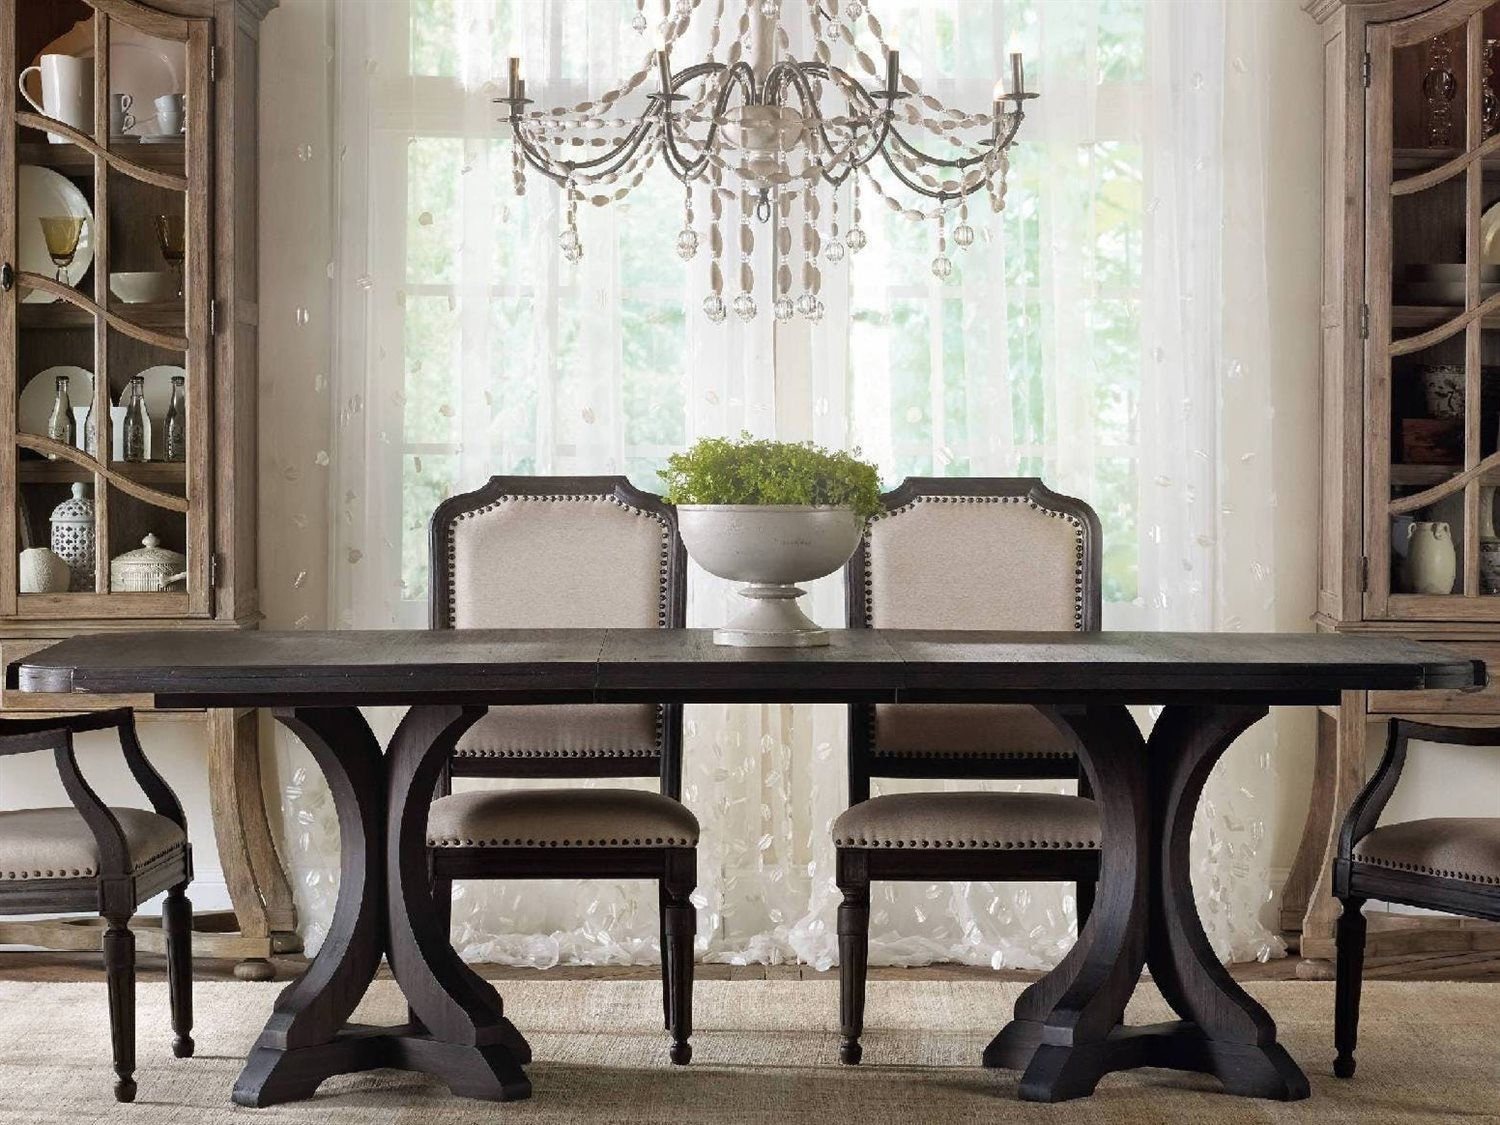 Hooker Furniture Corsica Dark Wood 78''L x 44''W Rectangular Pedestal Dining Table images